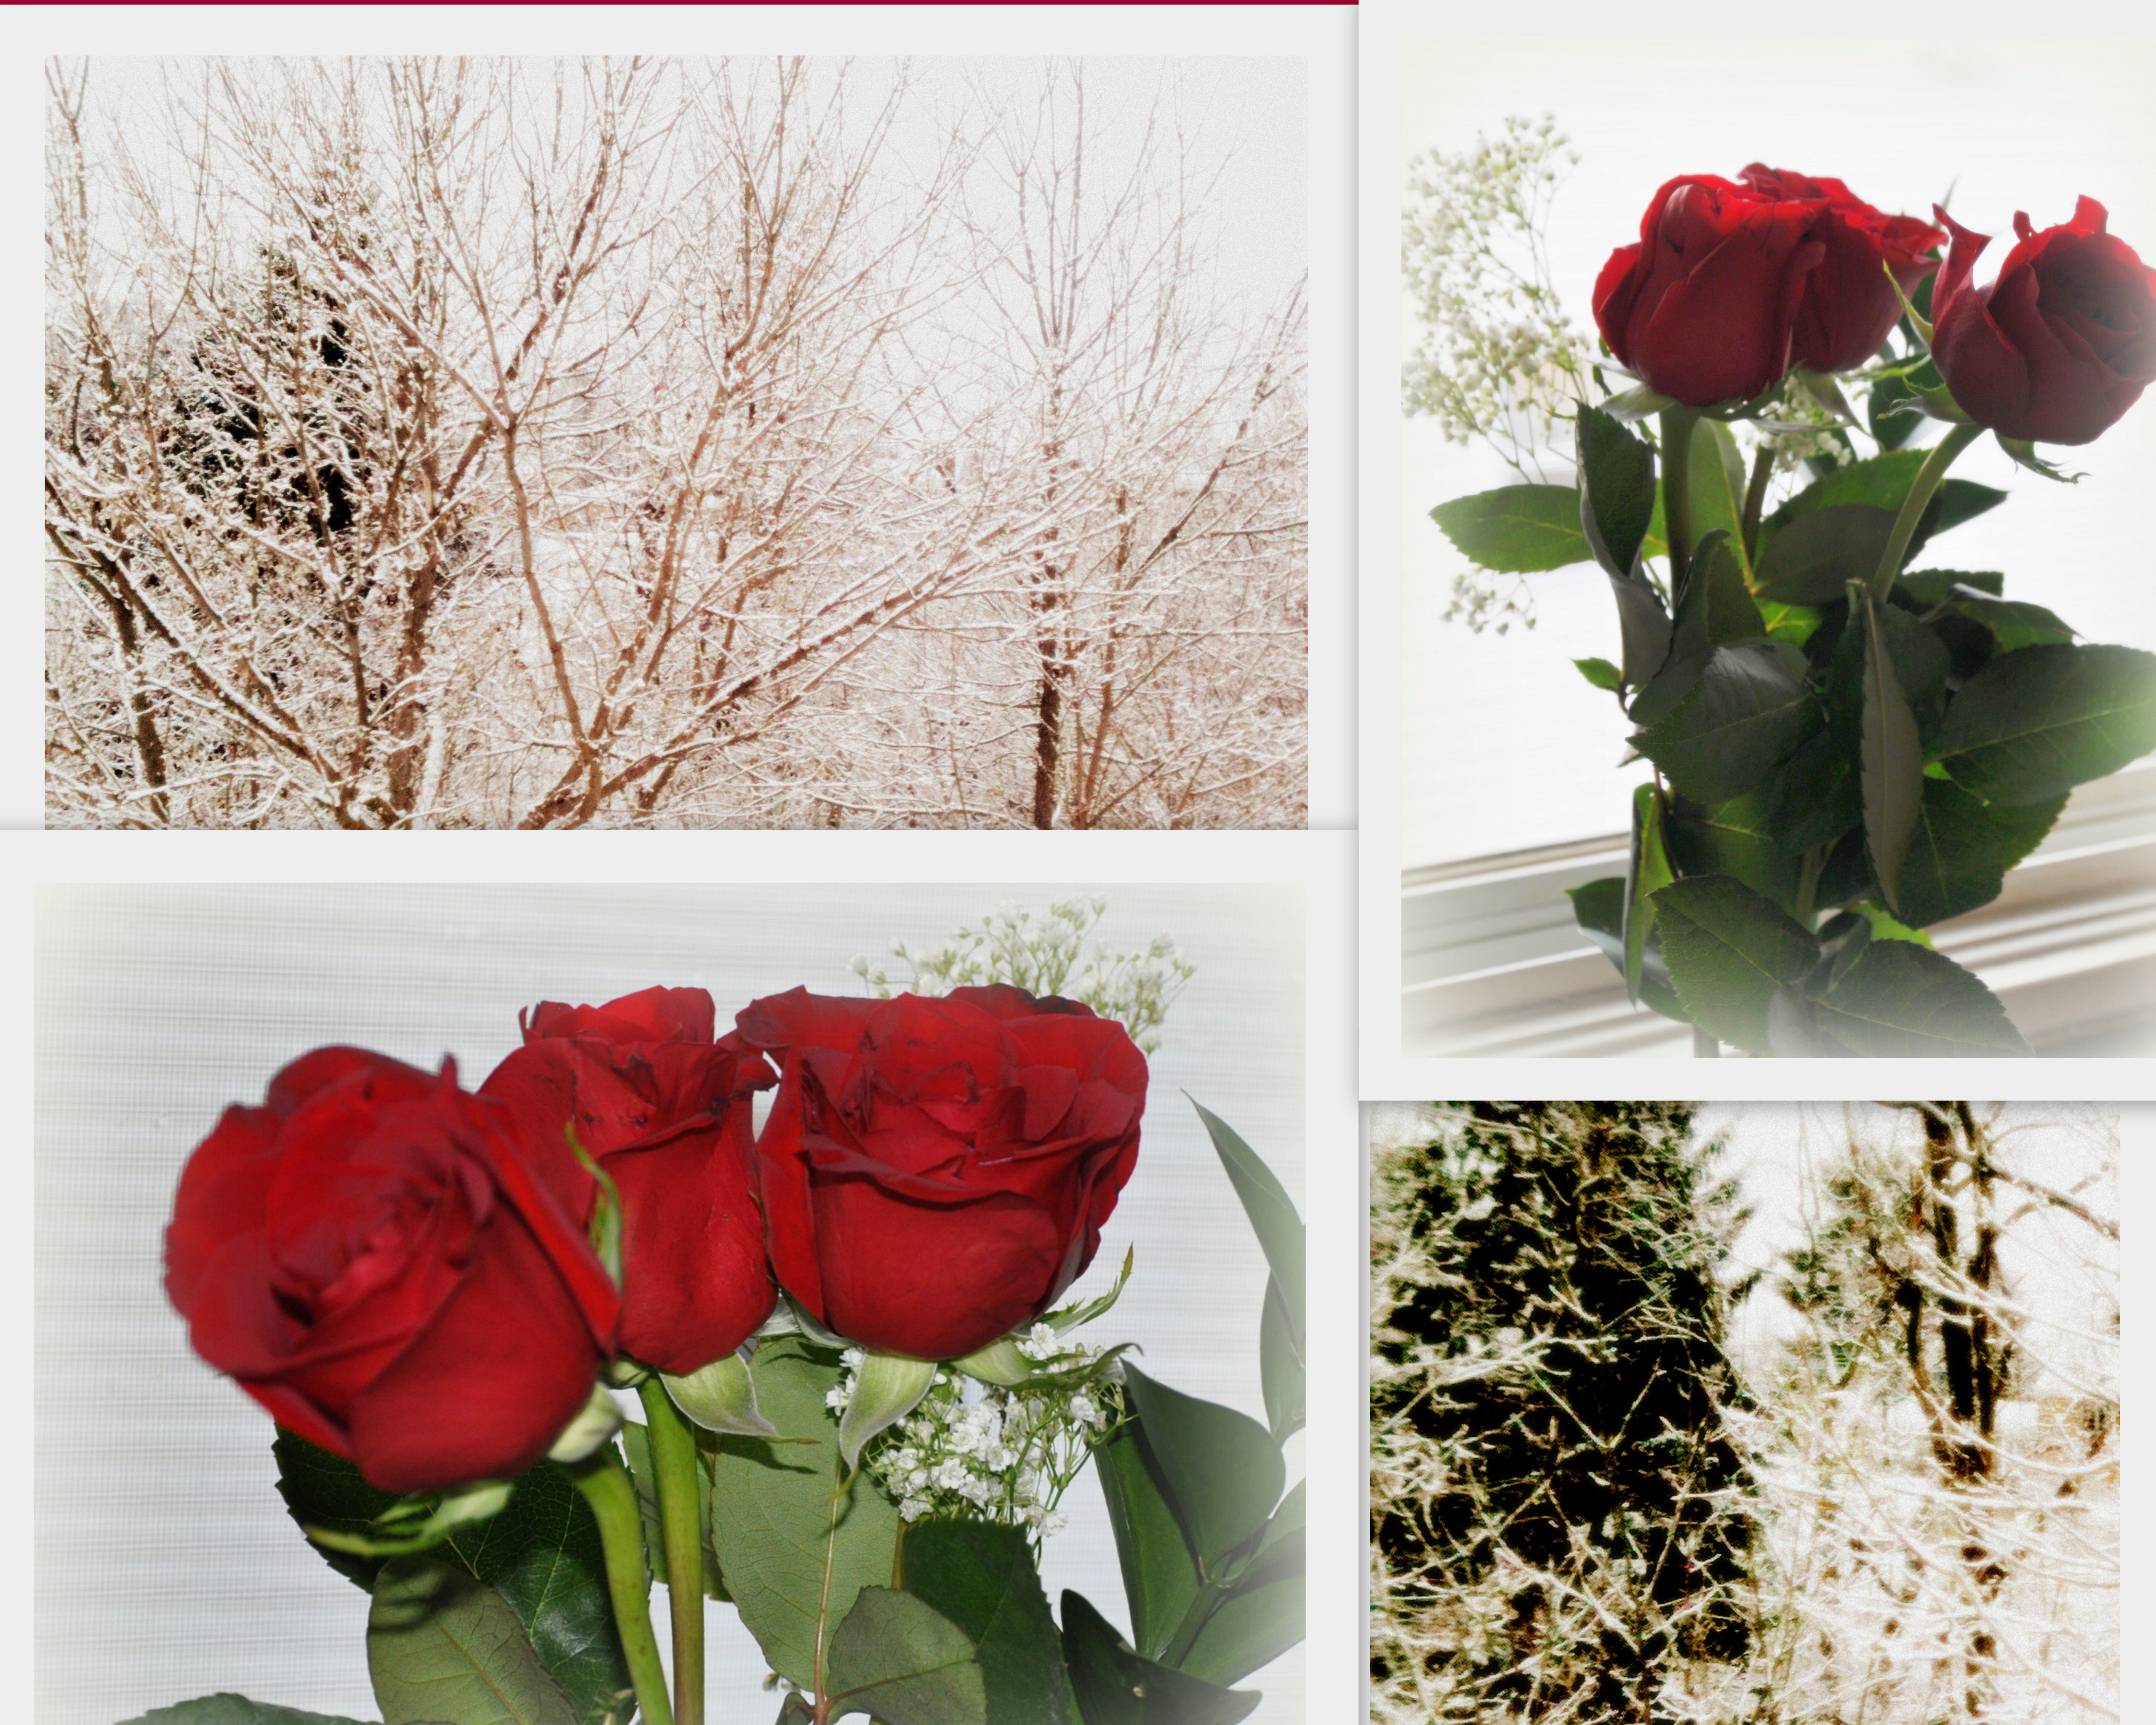 lacy snow and red roses